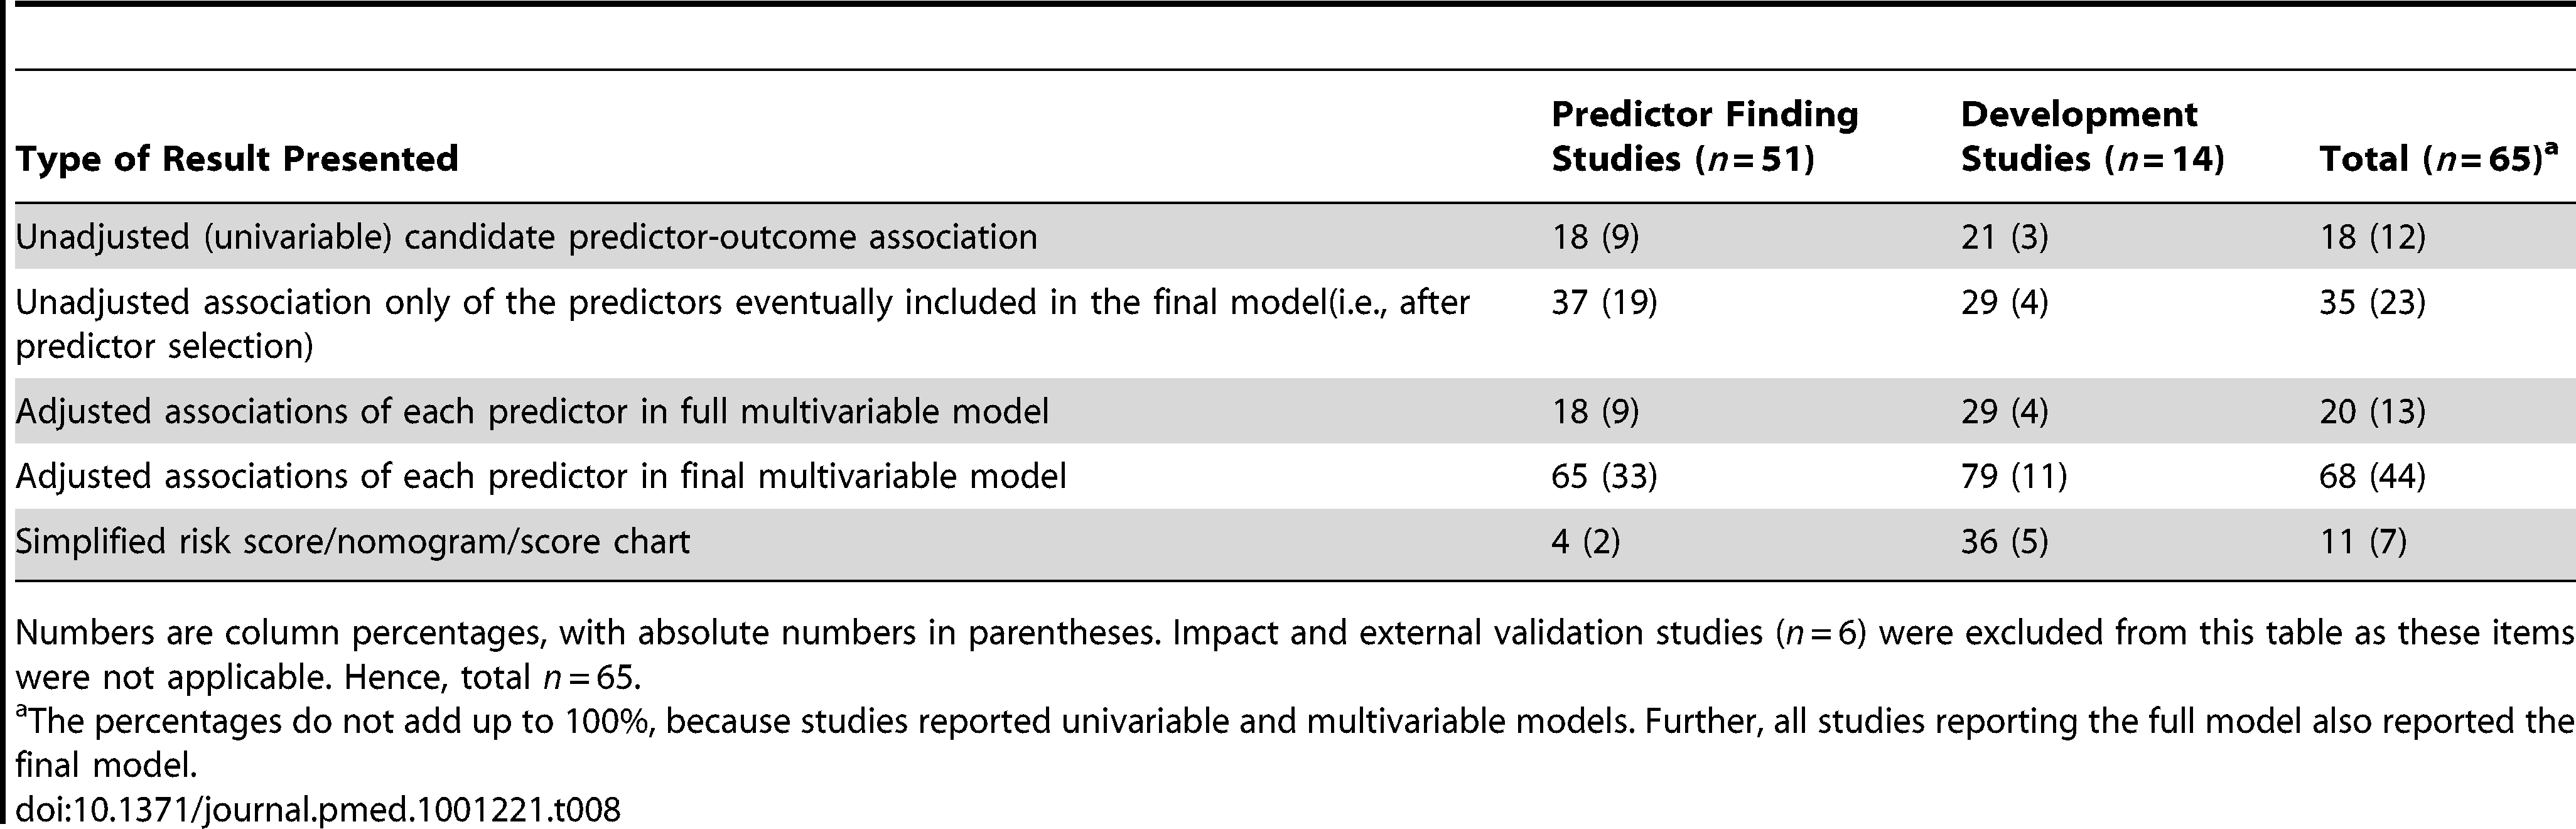 Presentation of the results, stratified by type of prediction study.